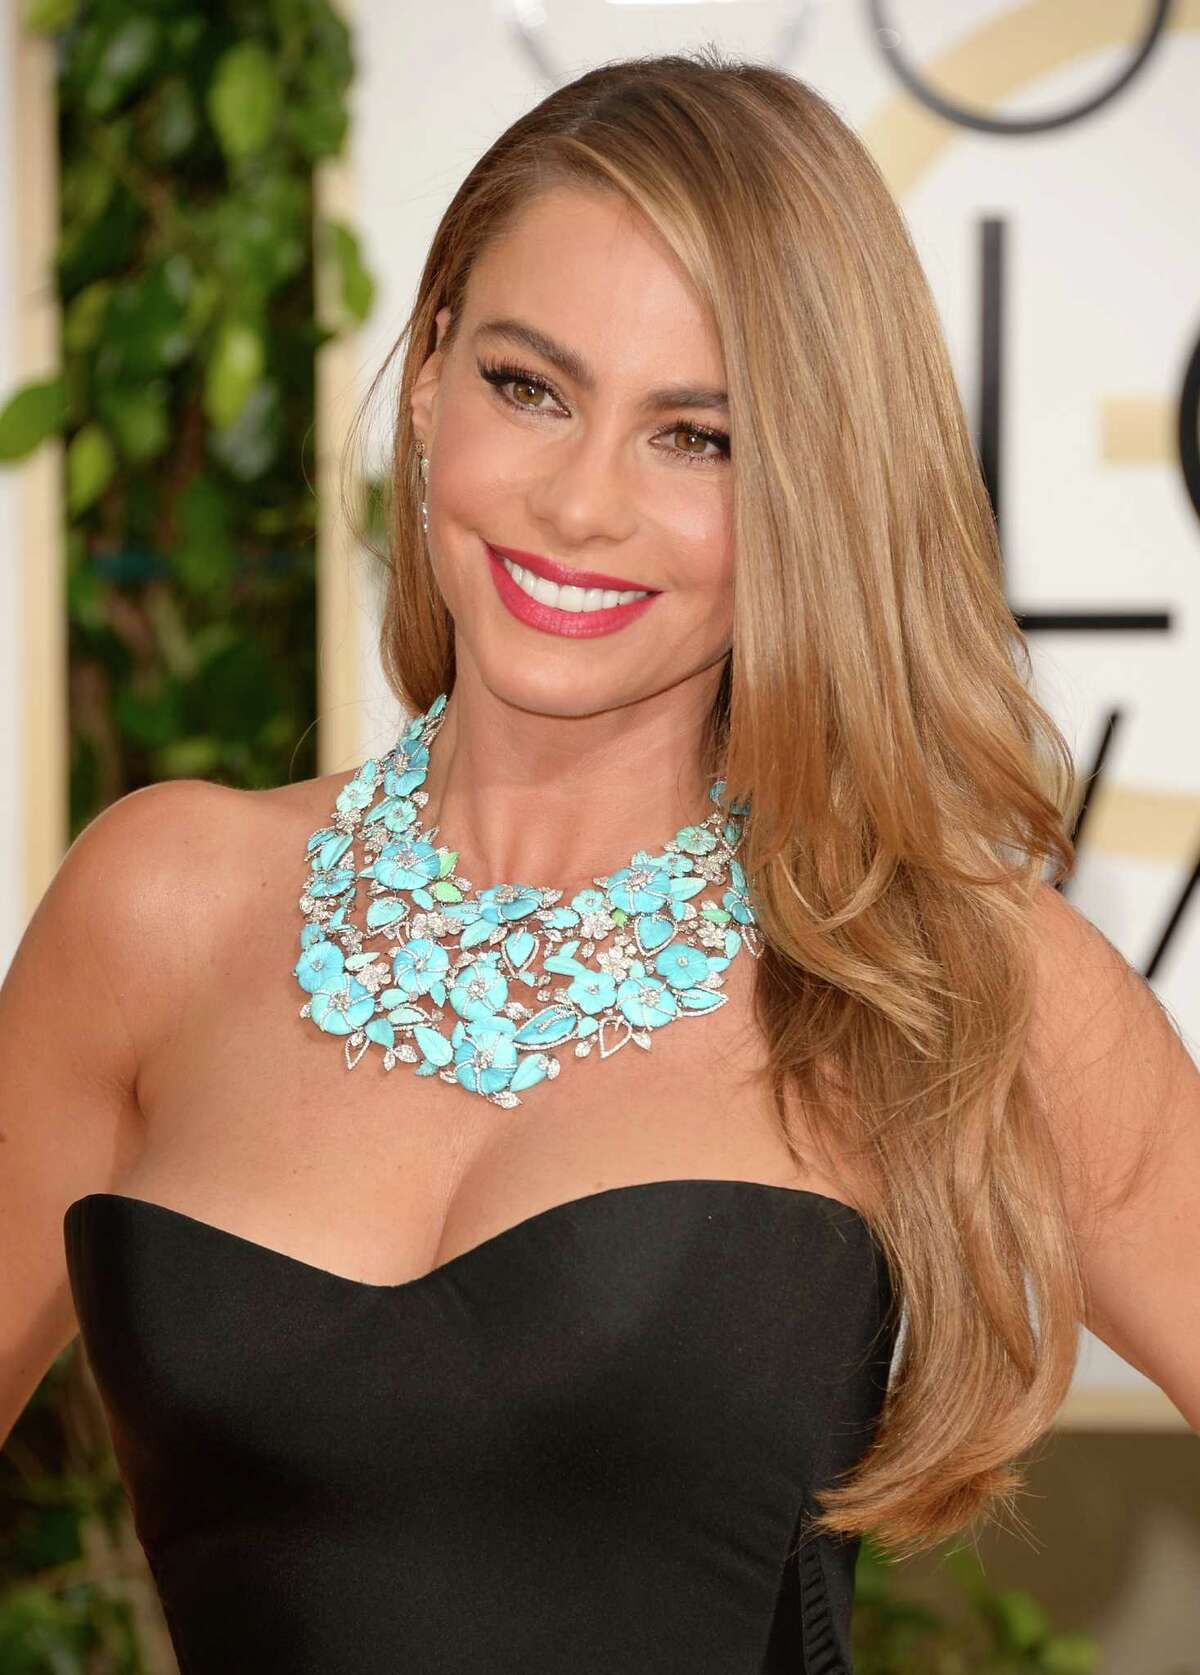 Sofia Vergara Claim to fame: 'Modern Family' The actress was born in Colombia and moved to Miami in the 1990's. She didn't have her first major English-speaking role until the 2003 film 'Chasing Papi.'